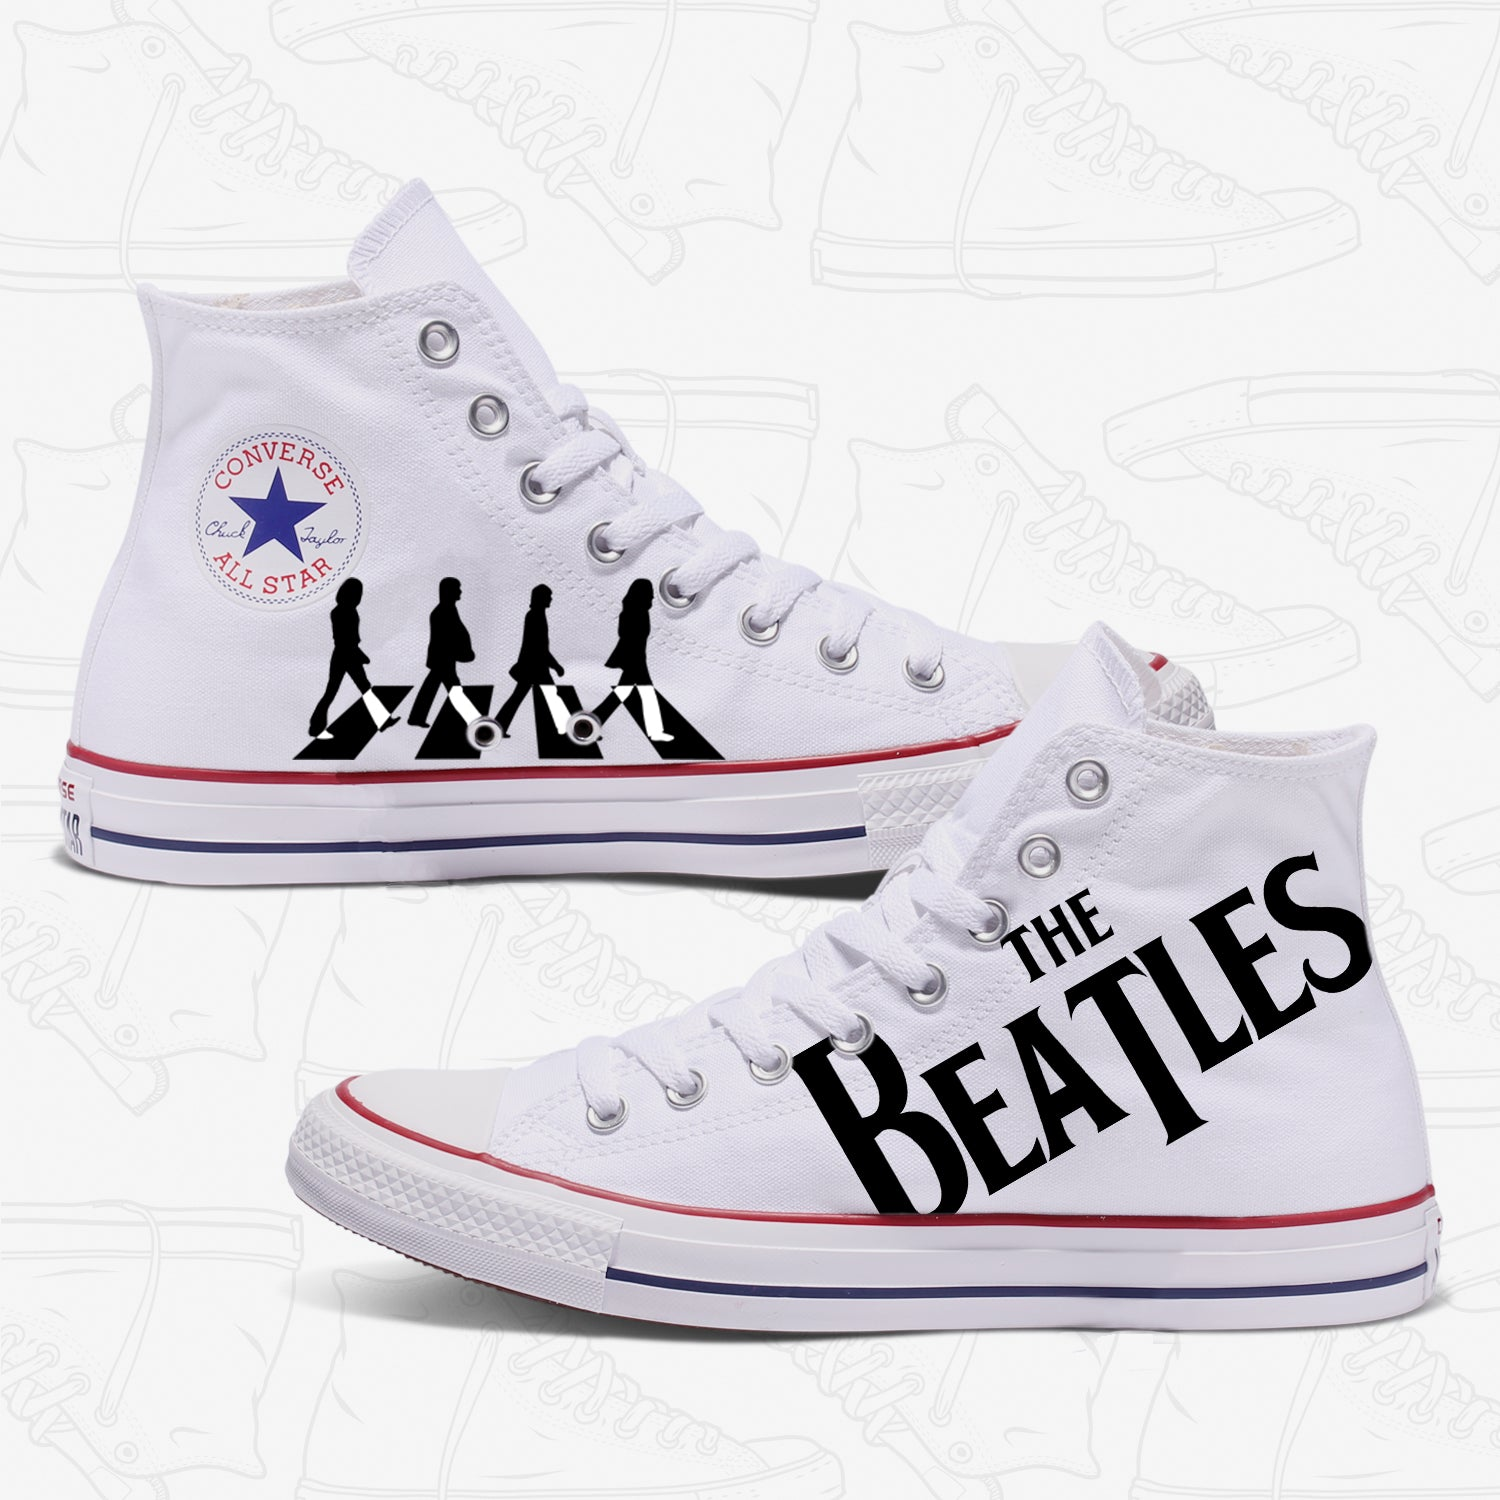 efc628056738 Converse Custom The Beatles Adult Shoes